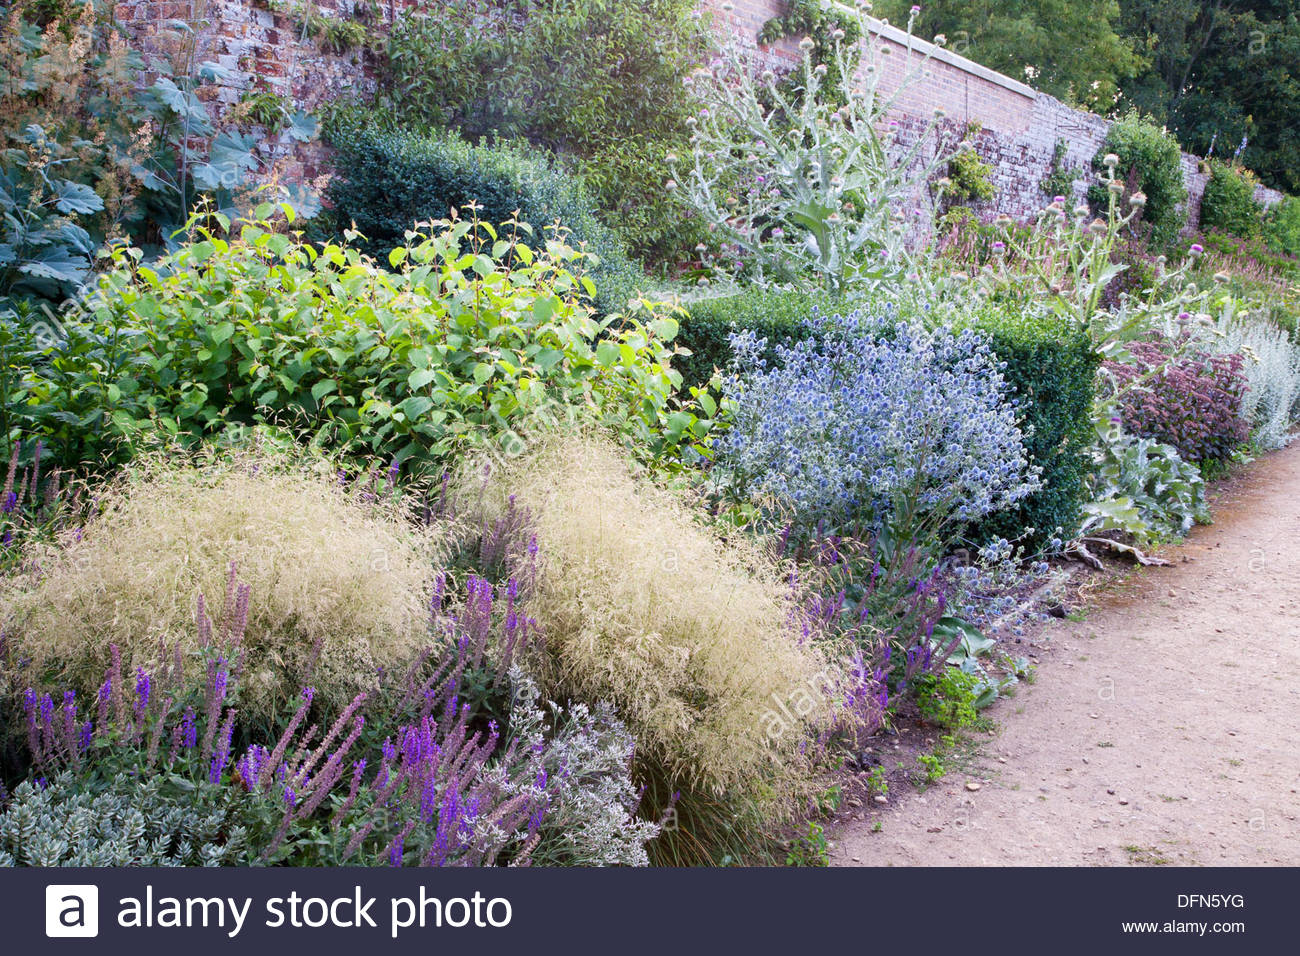 July border including ornamental grasses sedum eryngium for Small ornamental grasses for borders